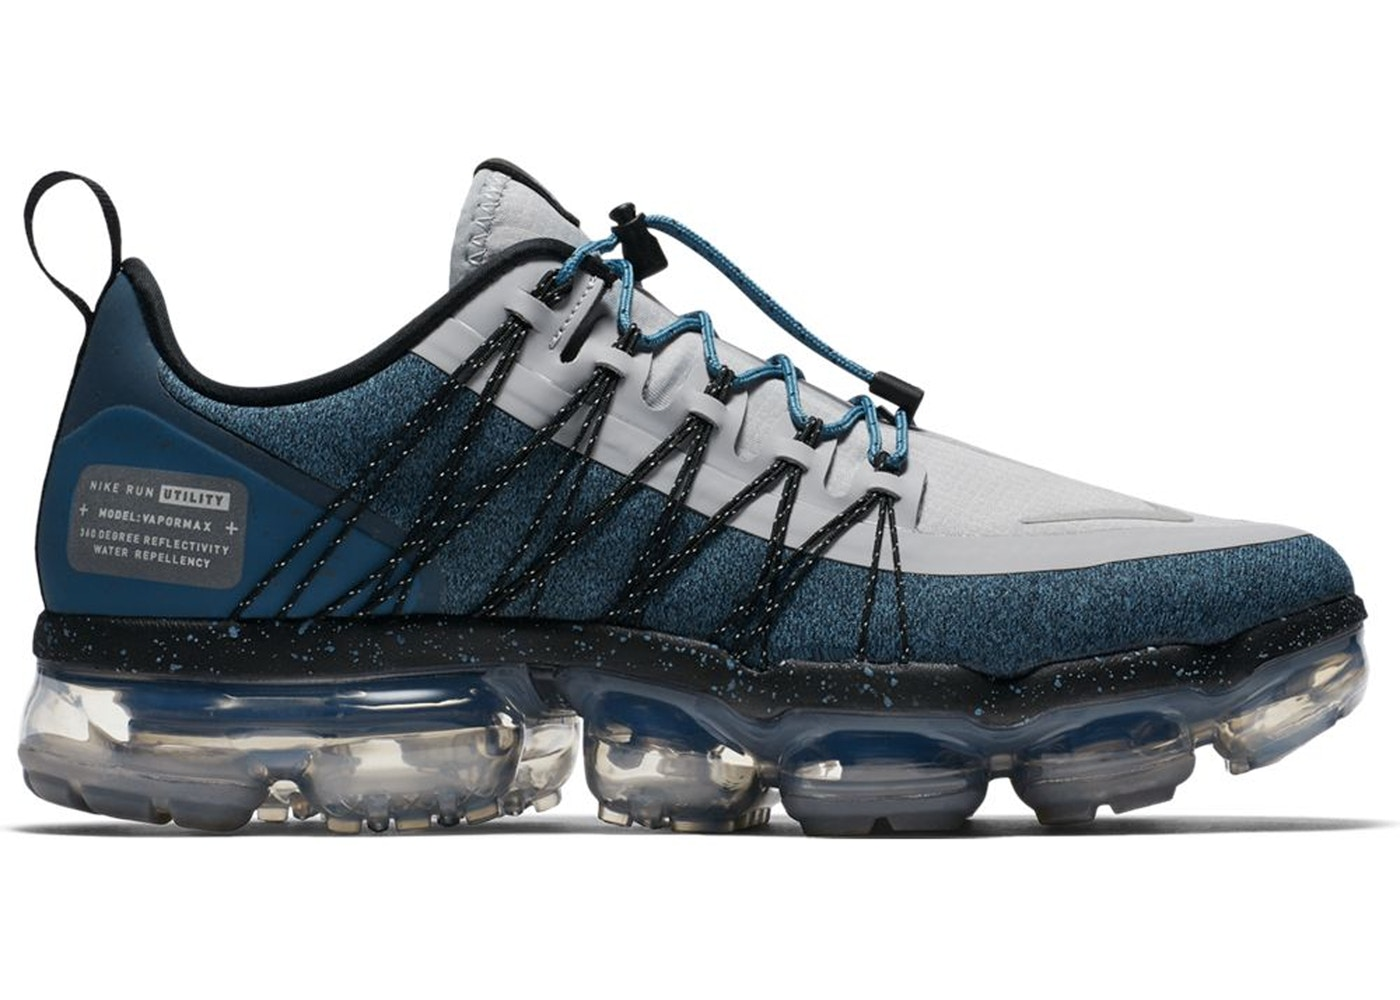 separation shoes 3fc16 49be6 Air VaporMax Run Utility Celestial Teal (W)